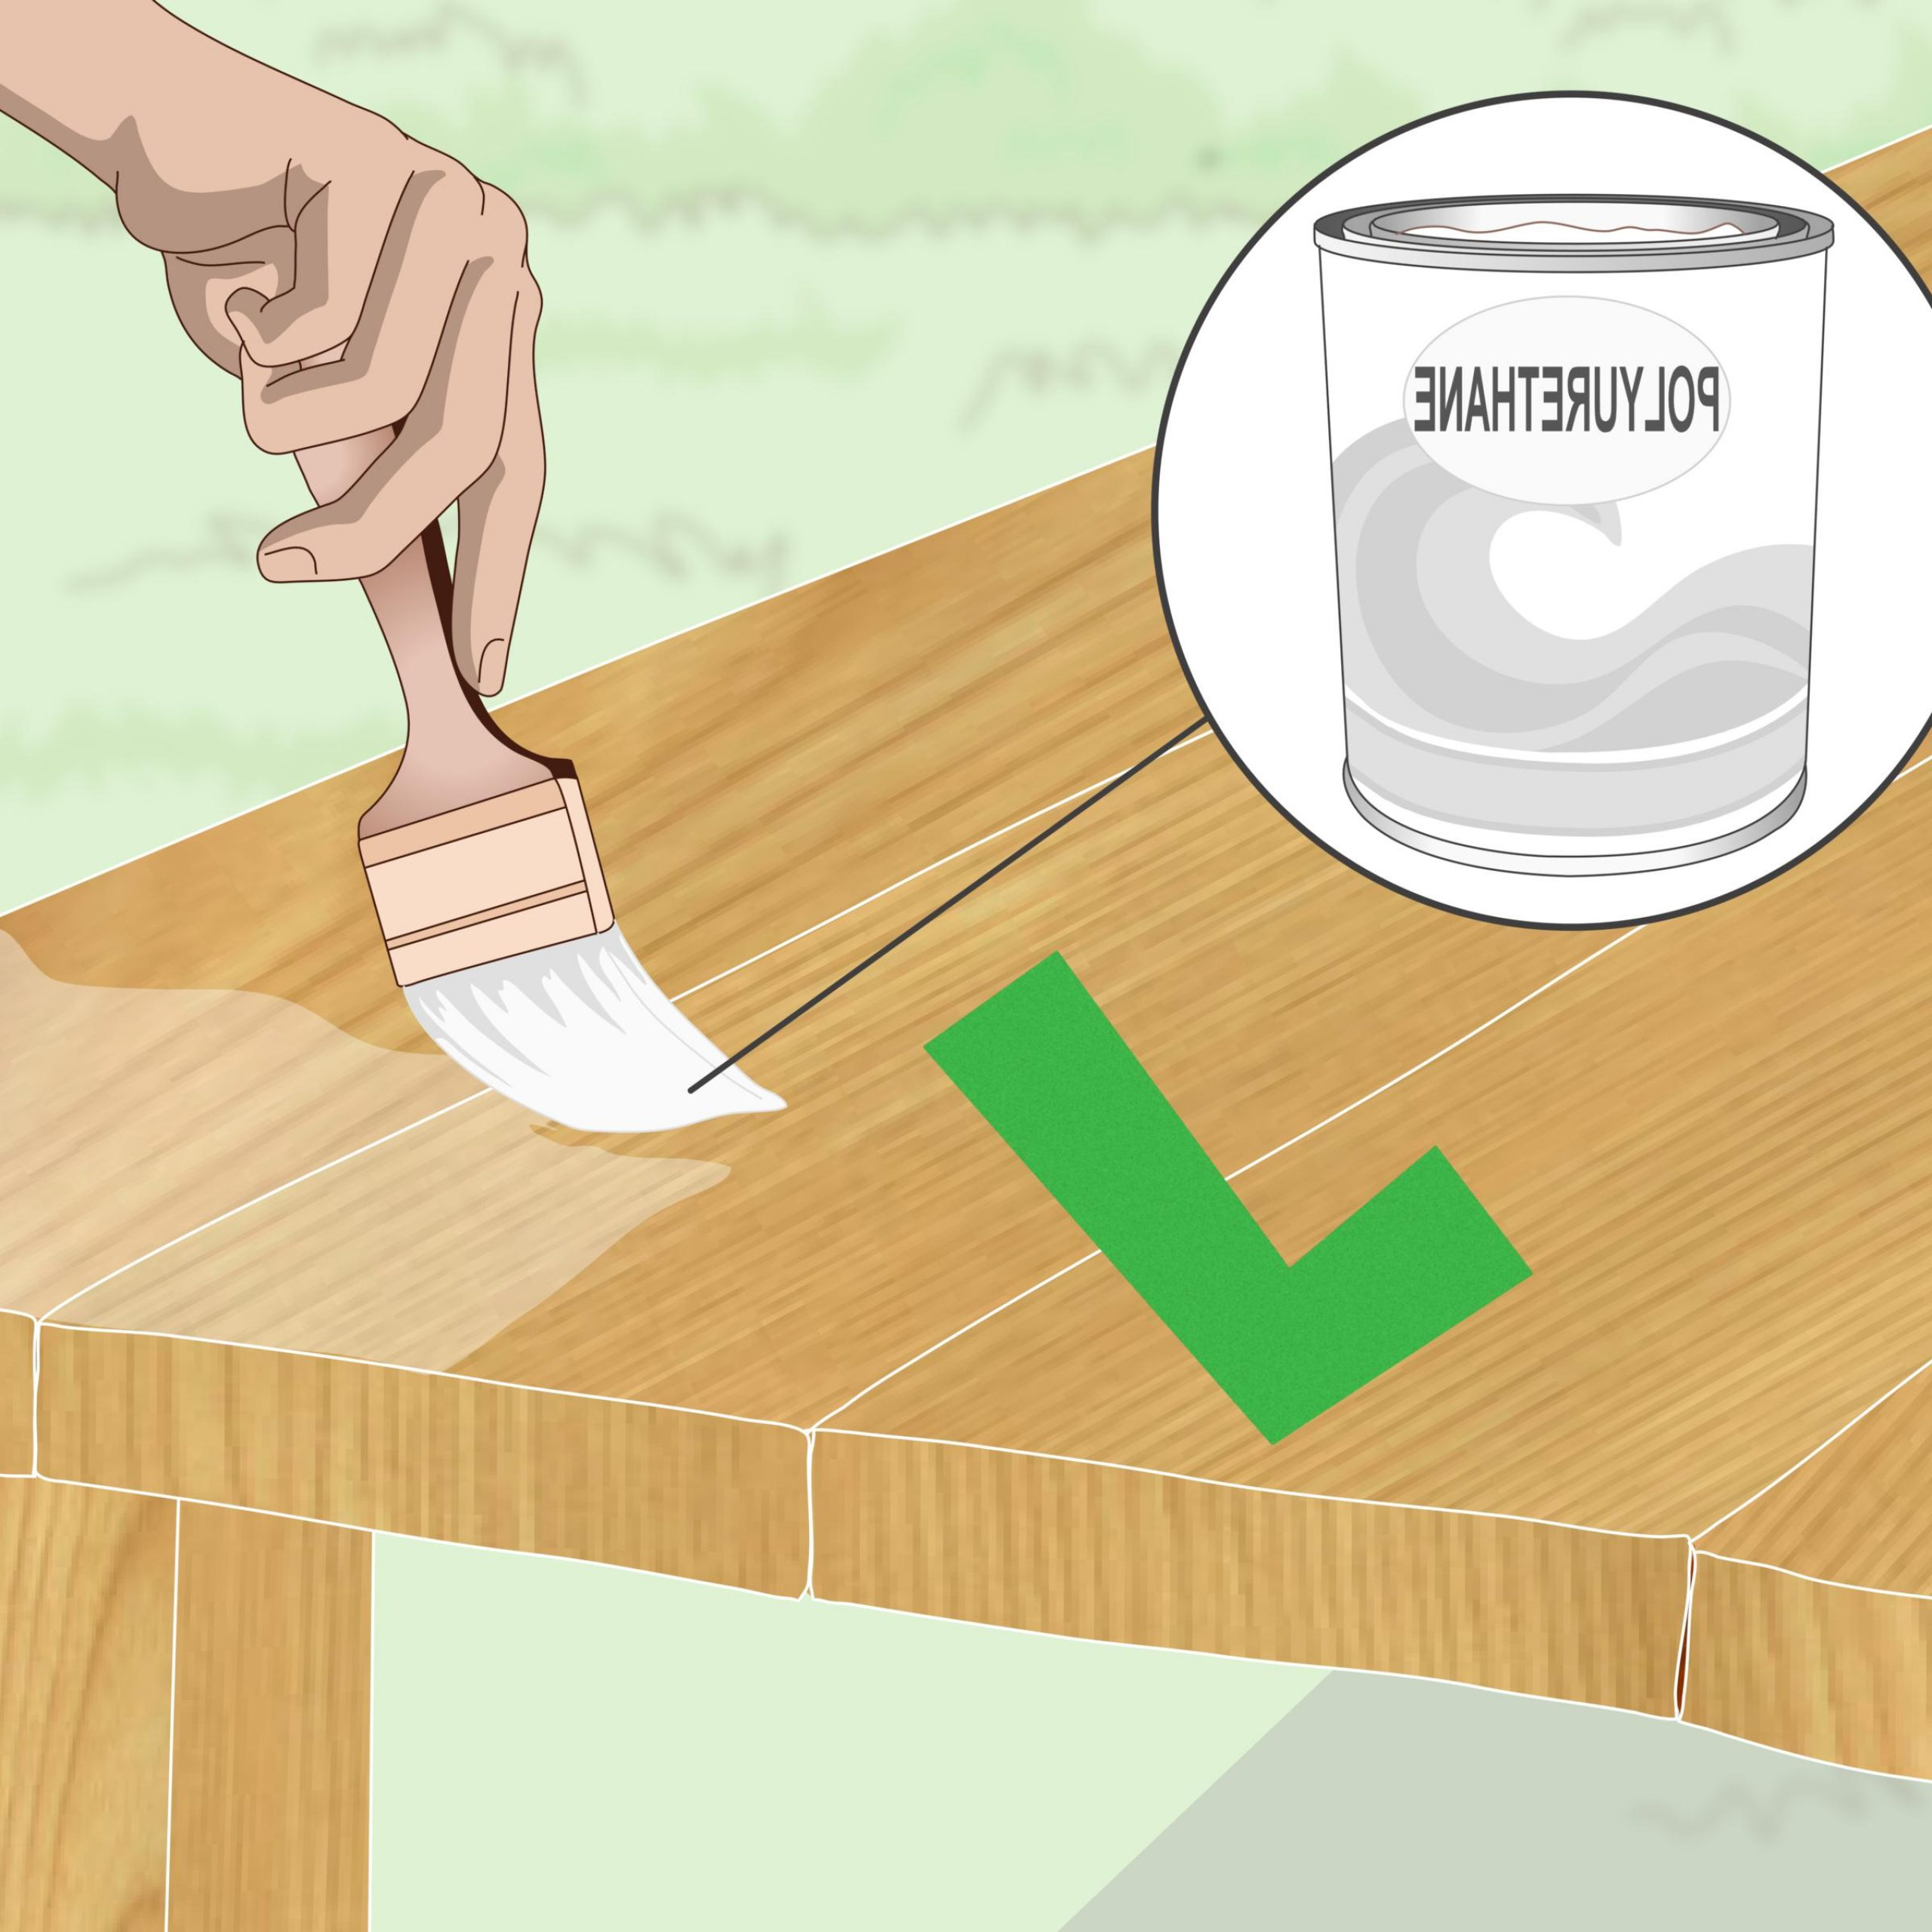 How To Stain Teak Furniture: 12 Steps (With Pictures) – Wikihow With Regard To Popular 3 Person Light Teak Oil Wood Outdoor Swings (View 11 of 30)